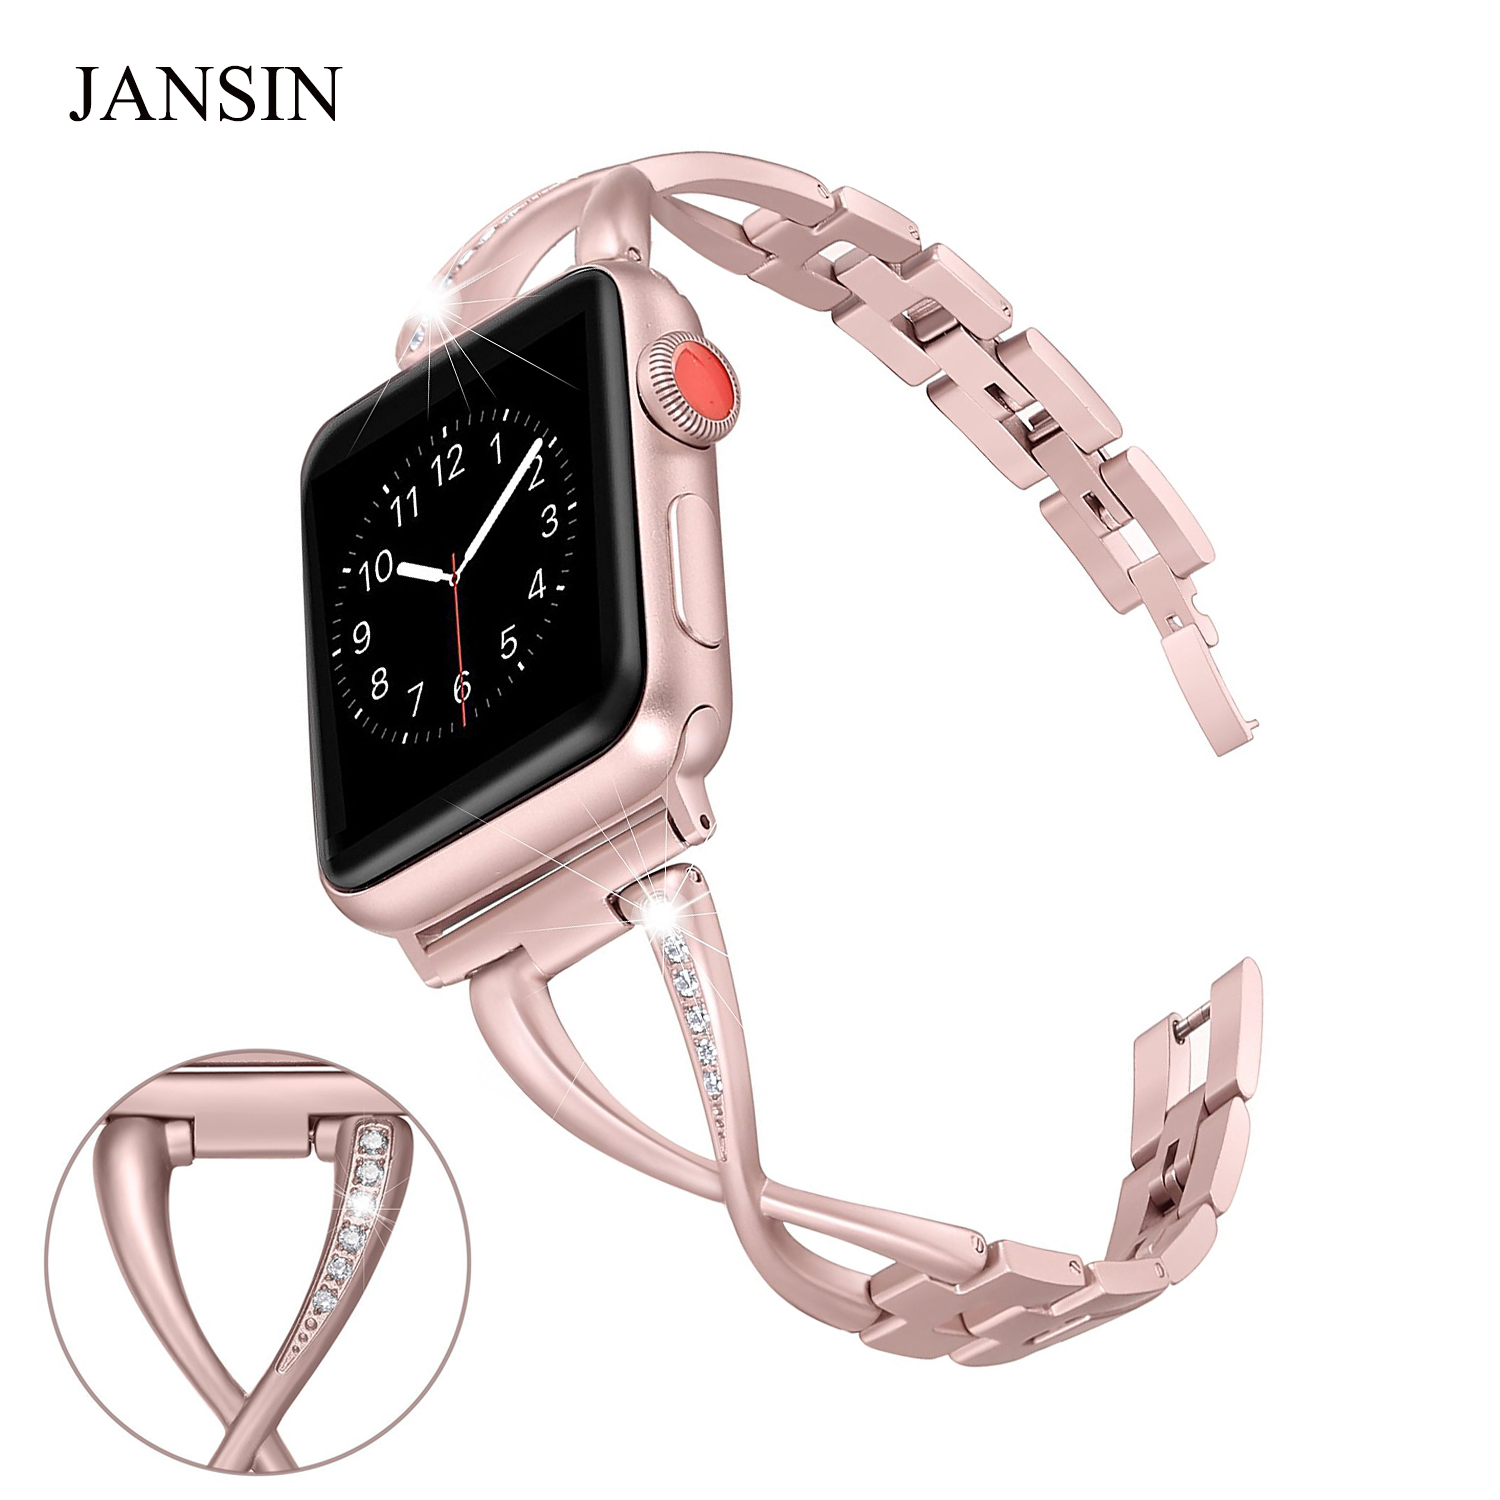 JANSIN Women Watch band for Apple Watch Bands 38mm/42mm diamond Stainless Steel Strap for iwatch series 3 2 1 Bracelet